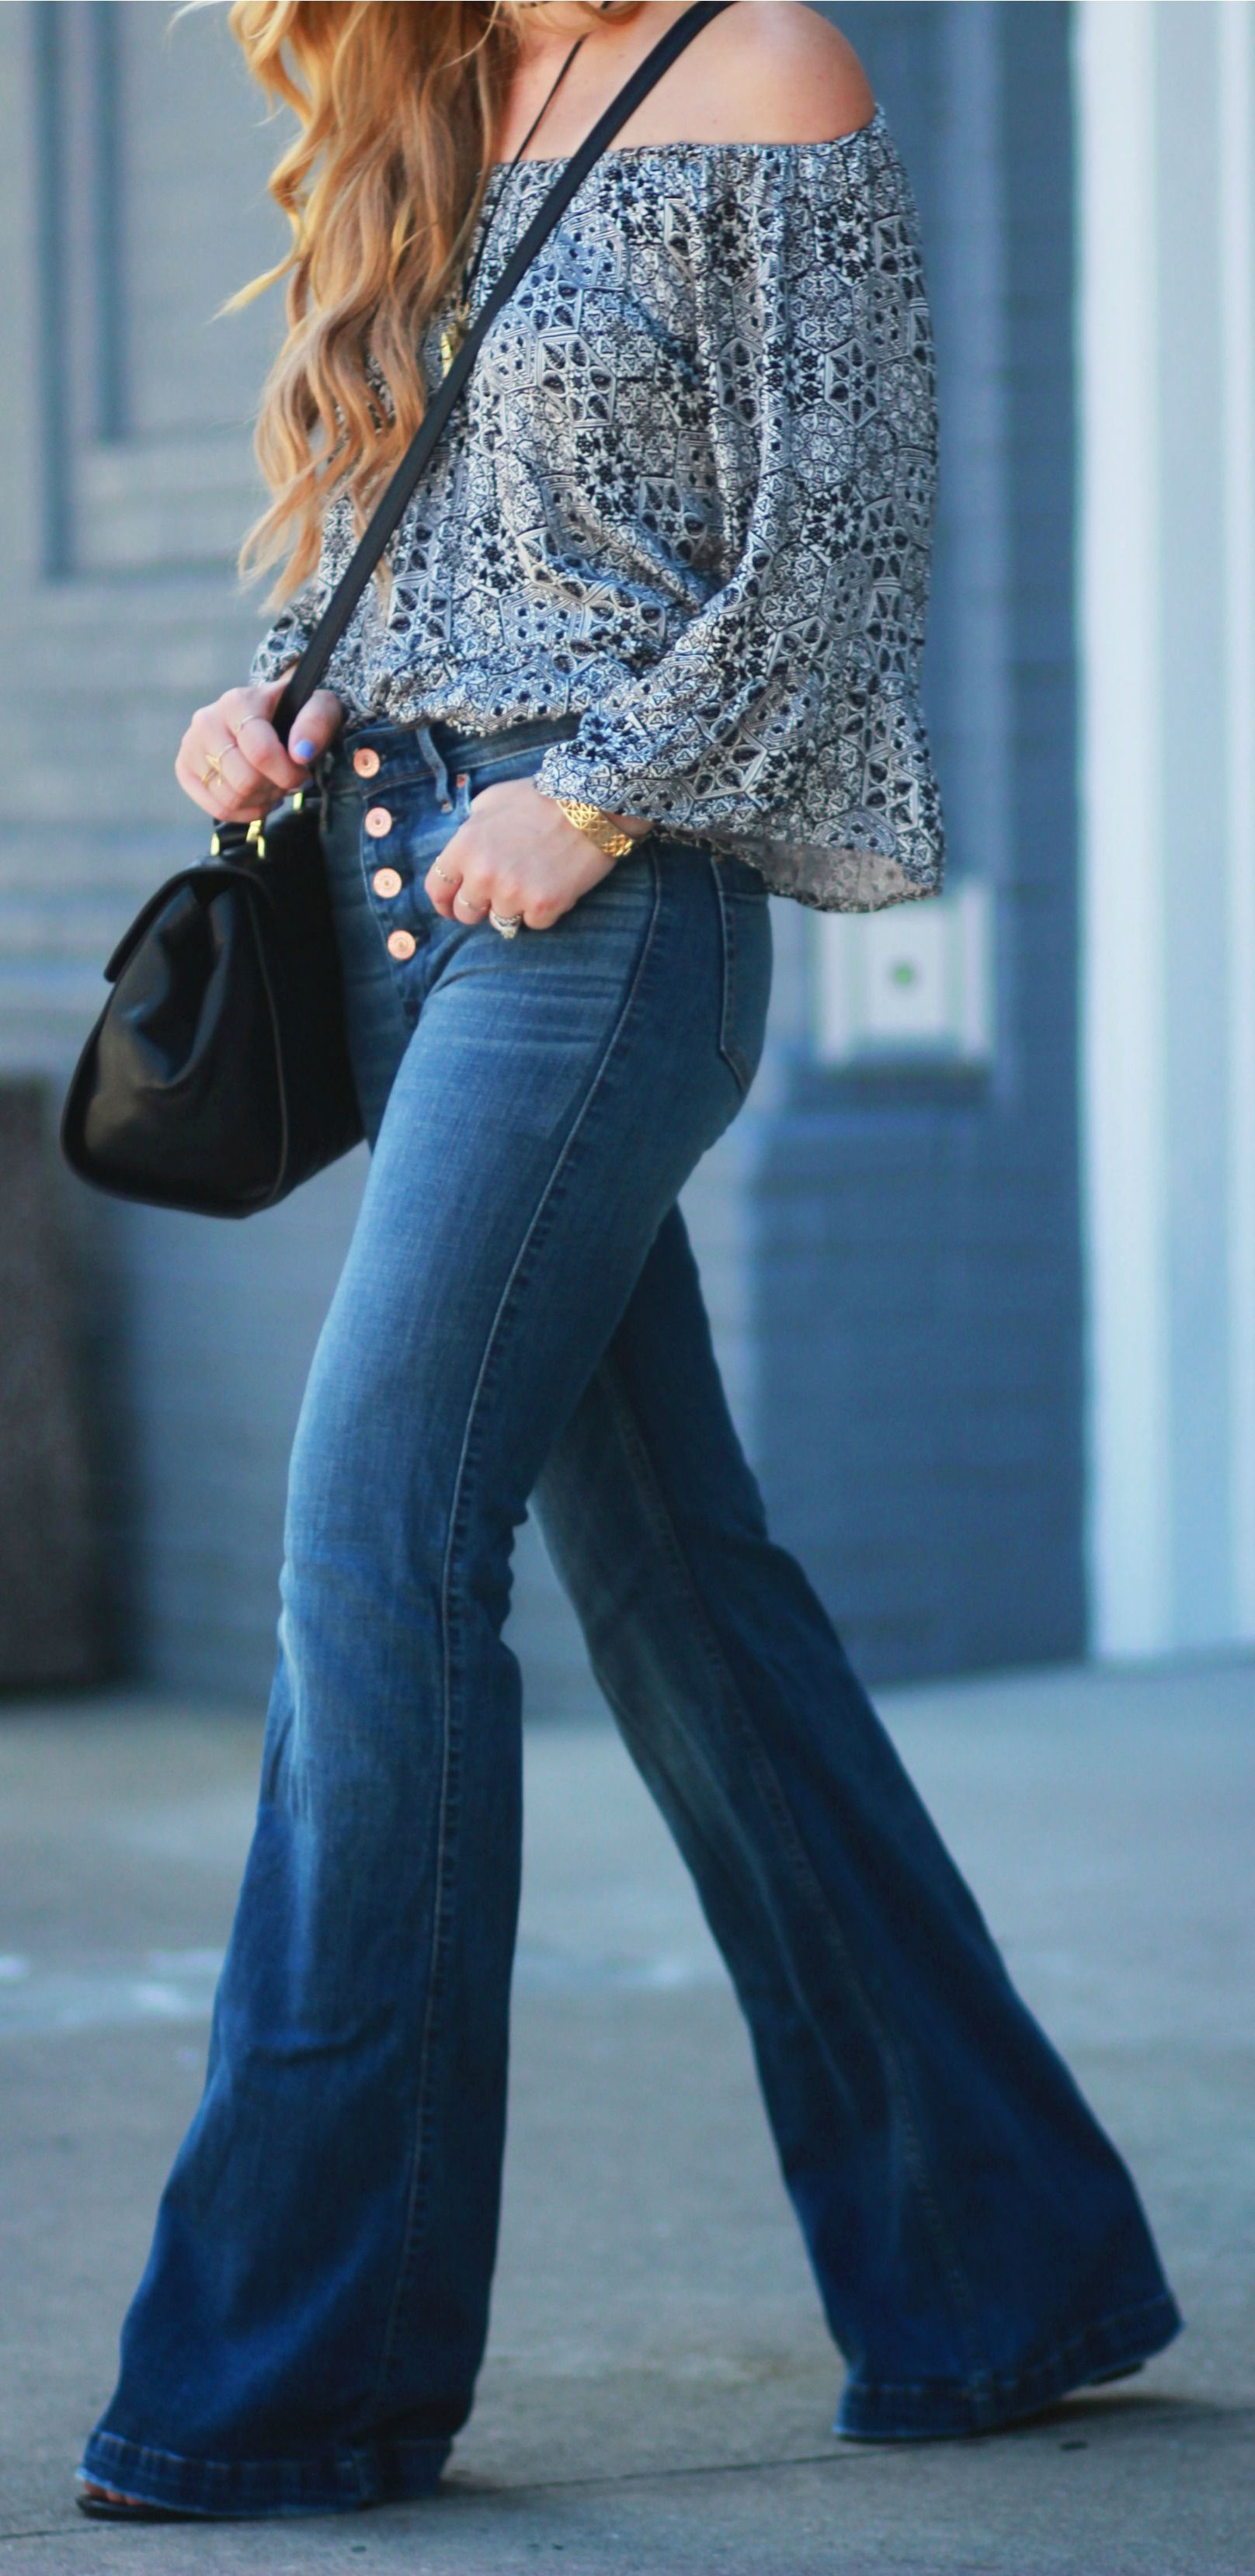 flared jean outfit  flare jeans outfit 70s inspired